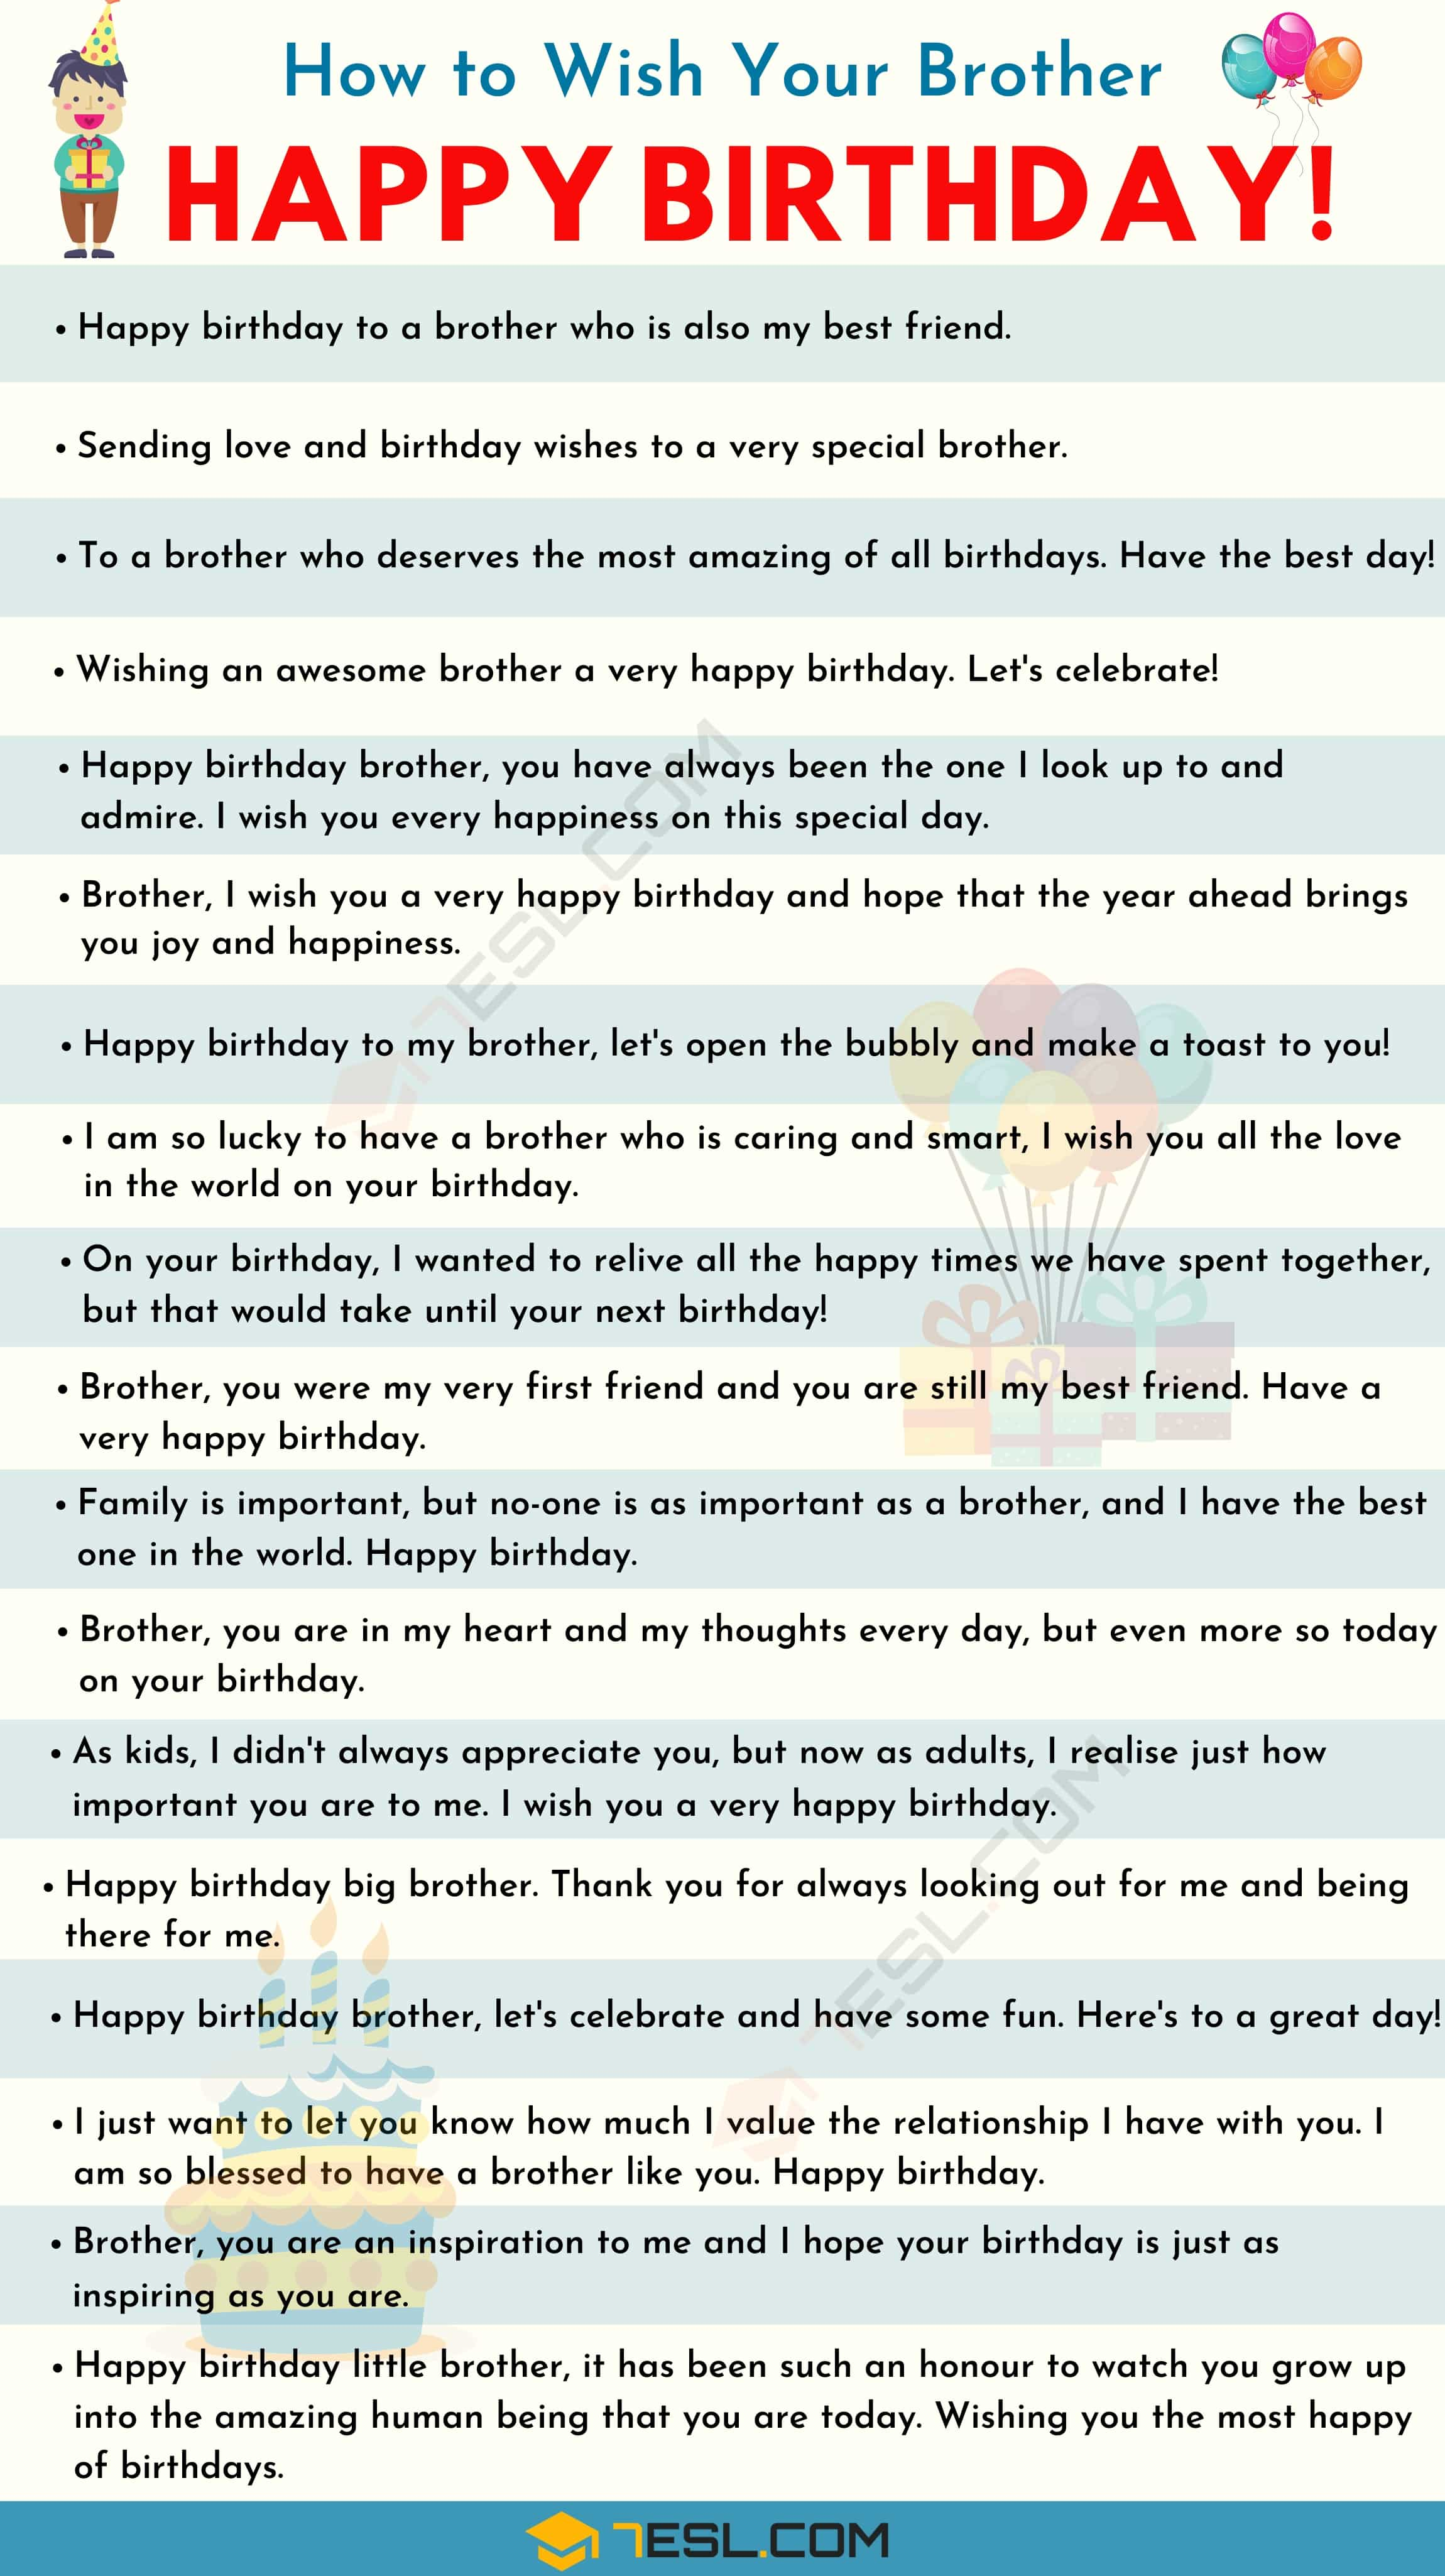 List of birthday wishes for your brother